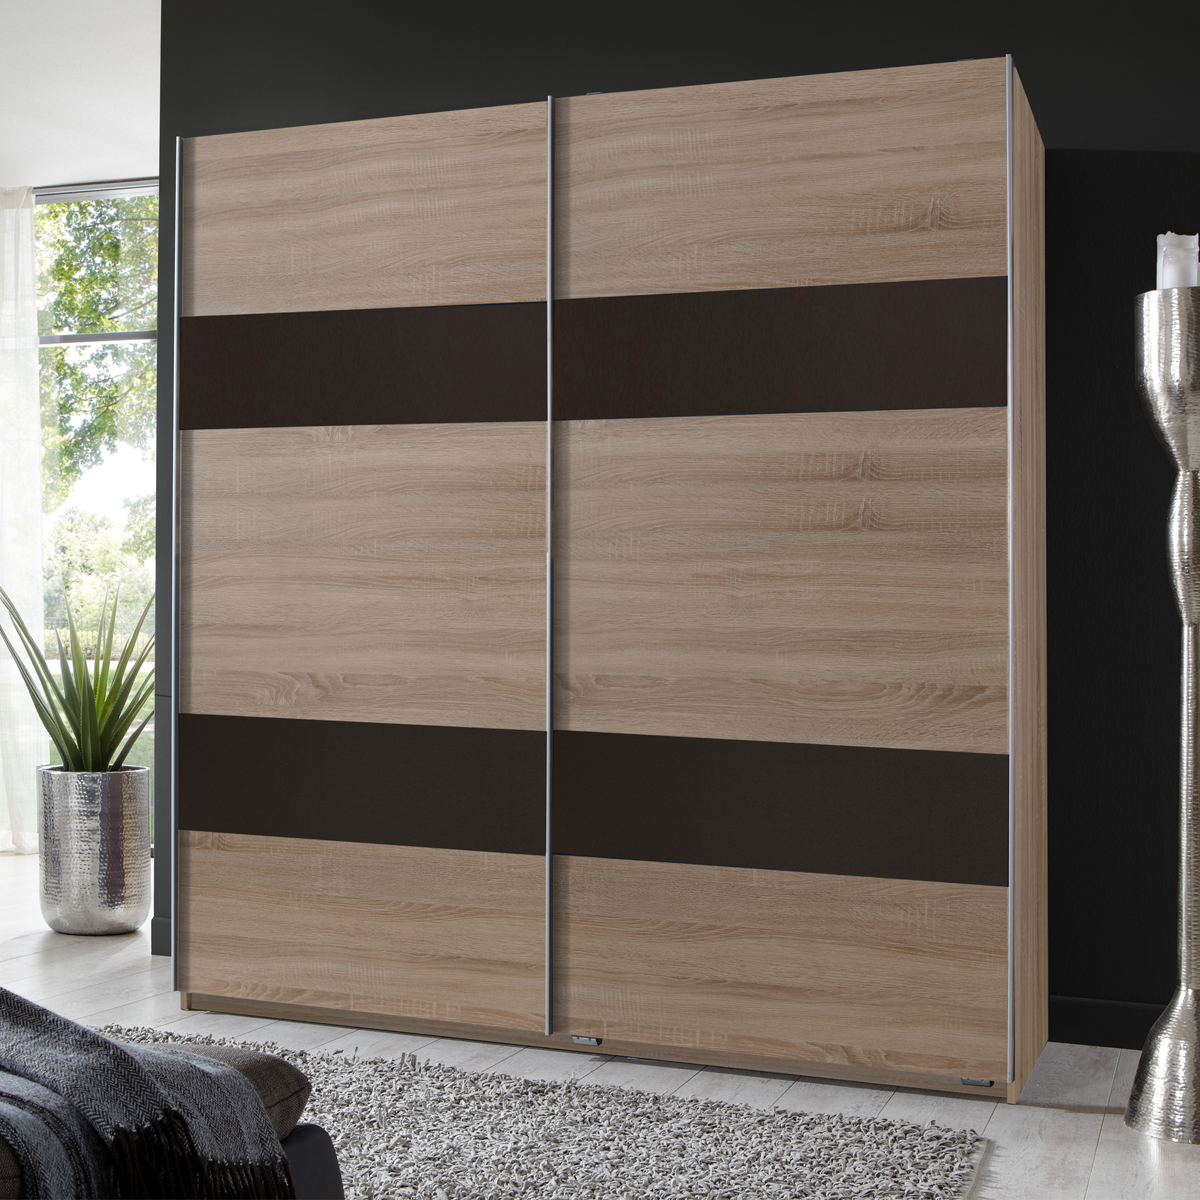 kleiderschrank chess schwebet renschrank eiche s gerau abs lavafarbig 180 cm ebay. Black Bedroom Furniture Sets. Home Design Ideas